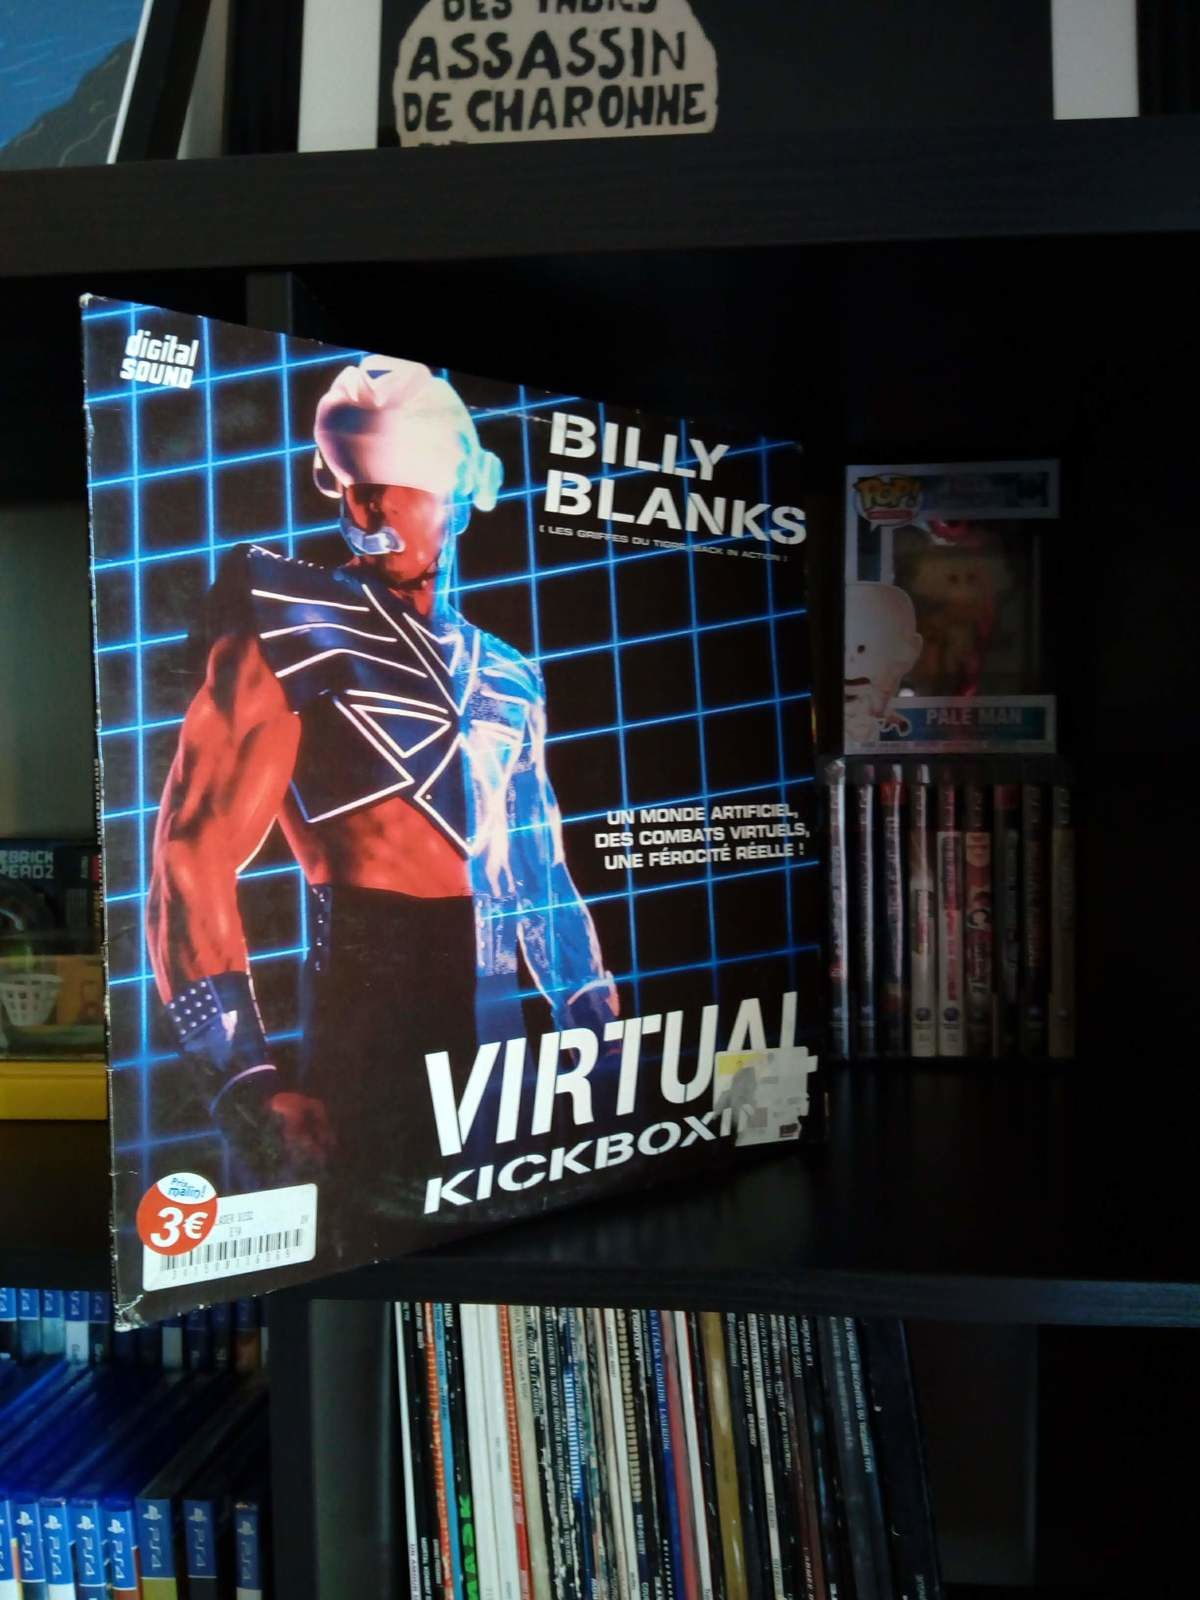 Laser Disc collection